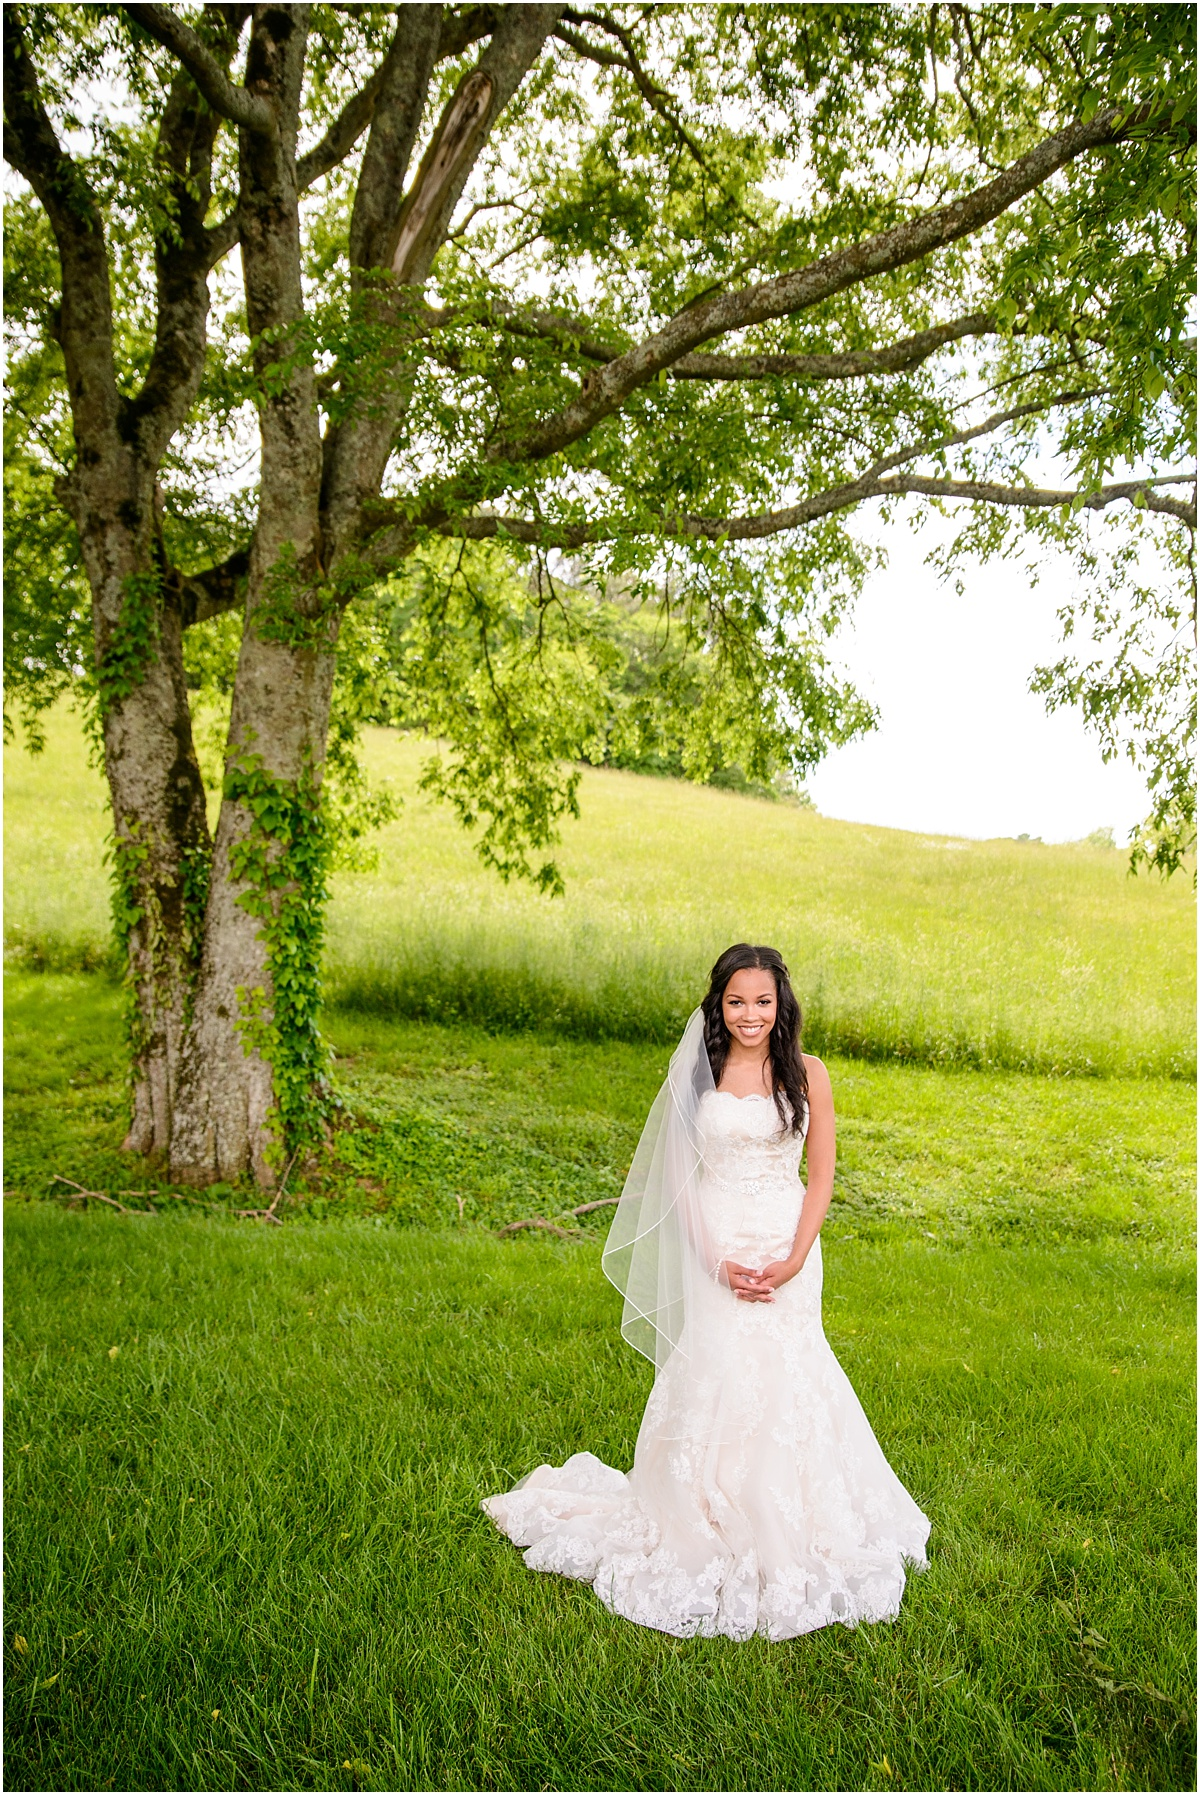 Greg Smit Photography Mint Springs Farm Nashville Tennessee wedding photographer_0337